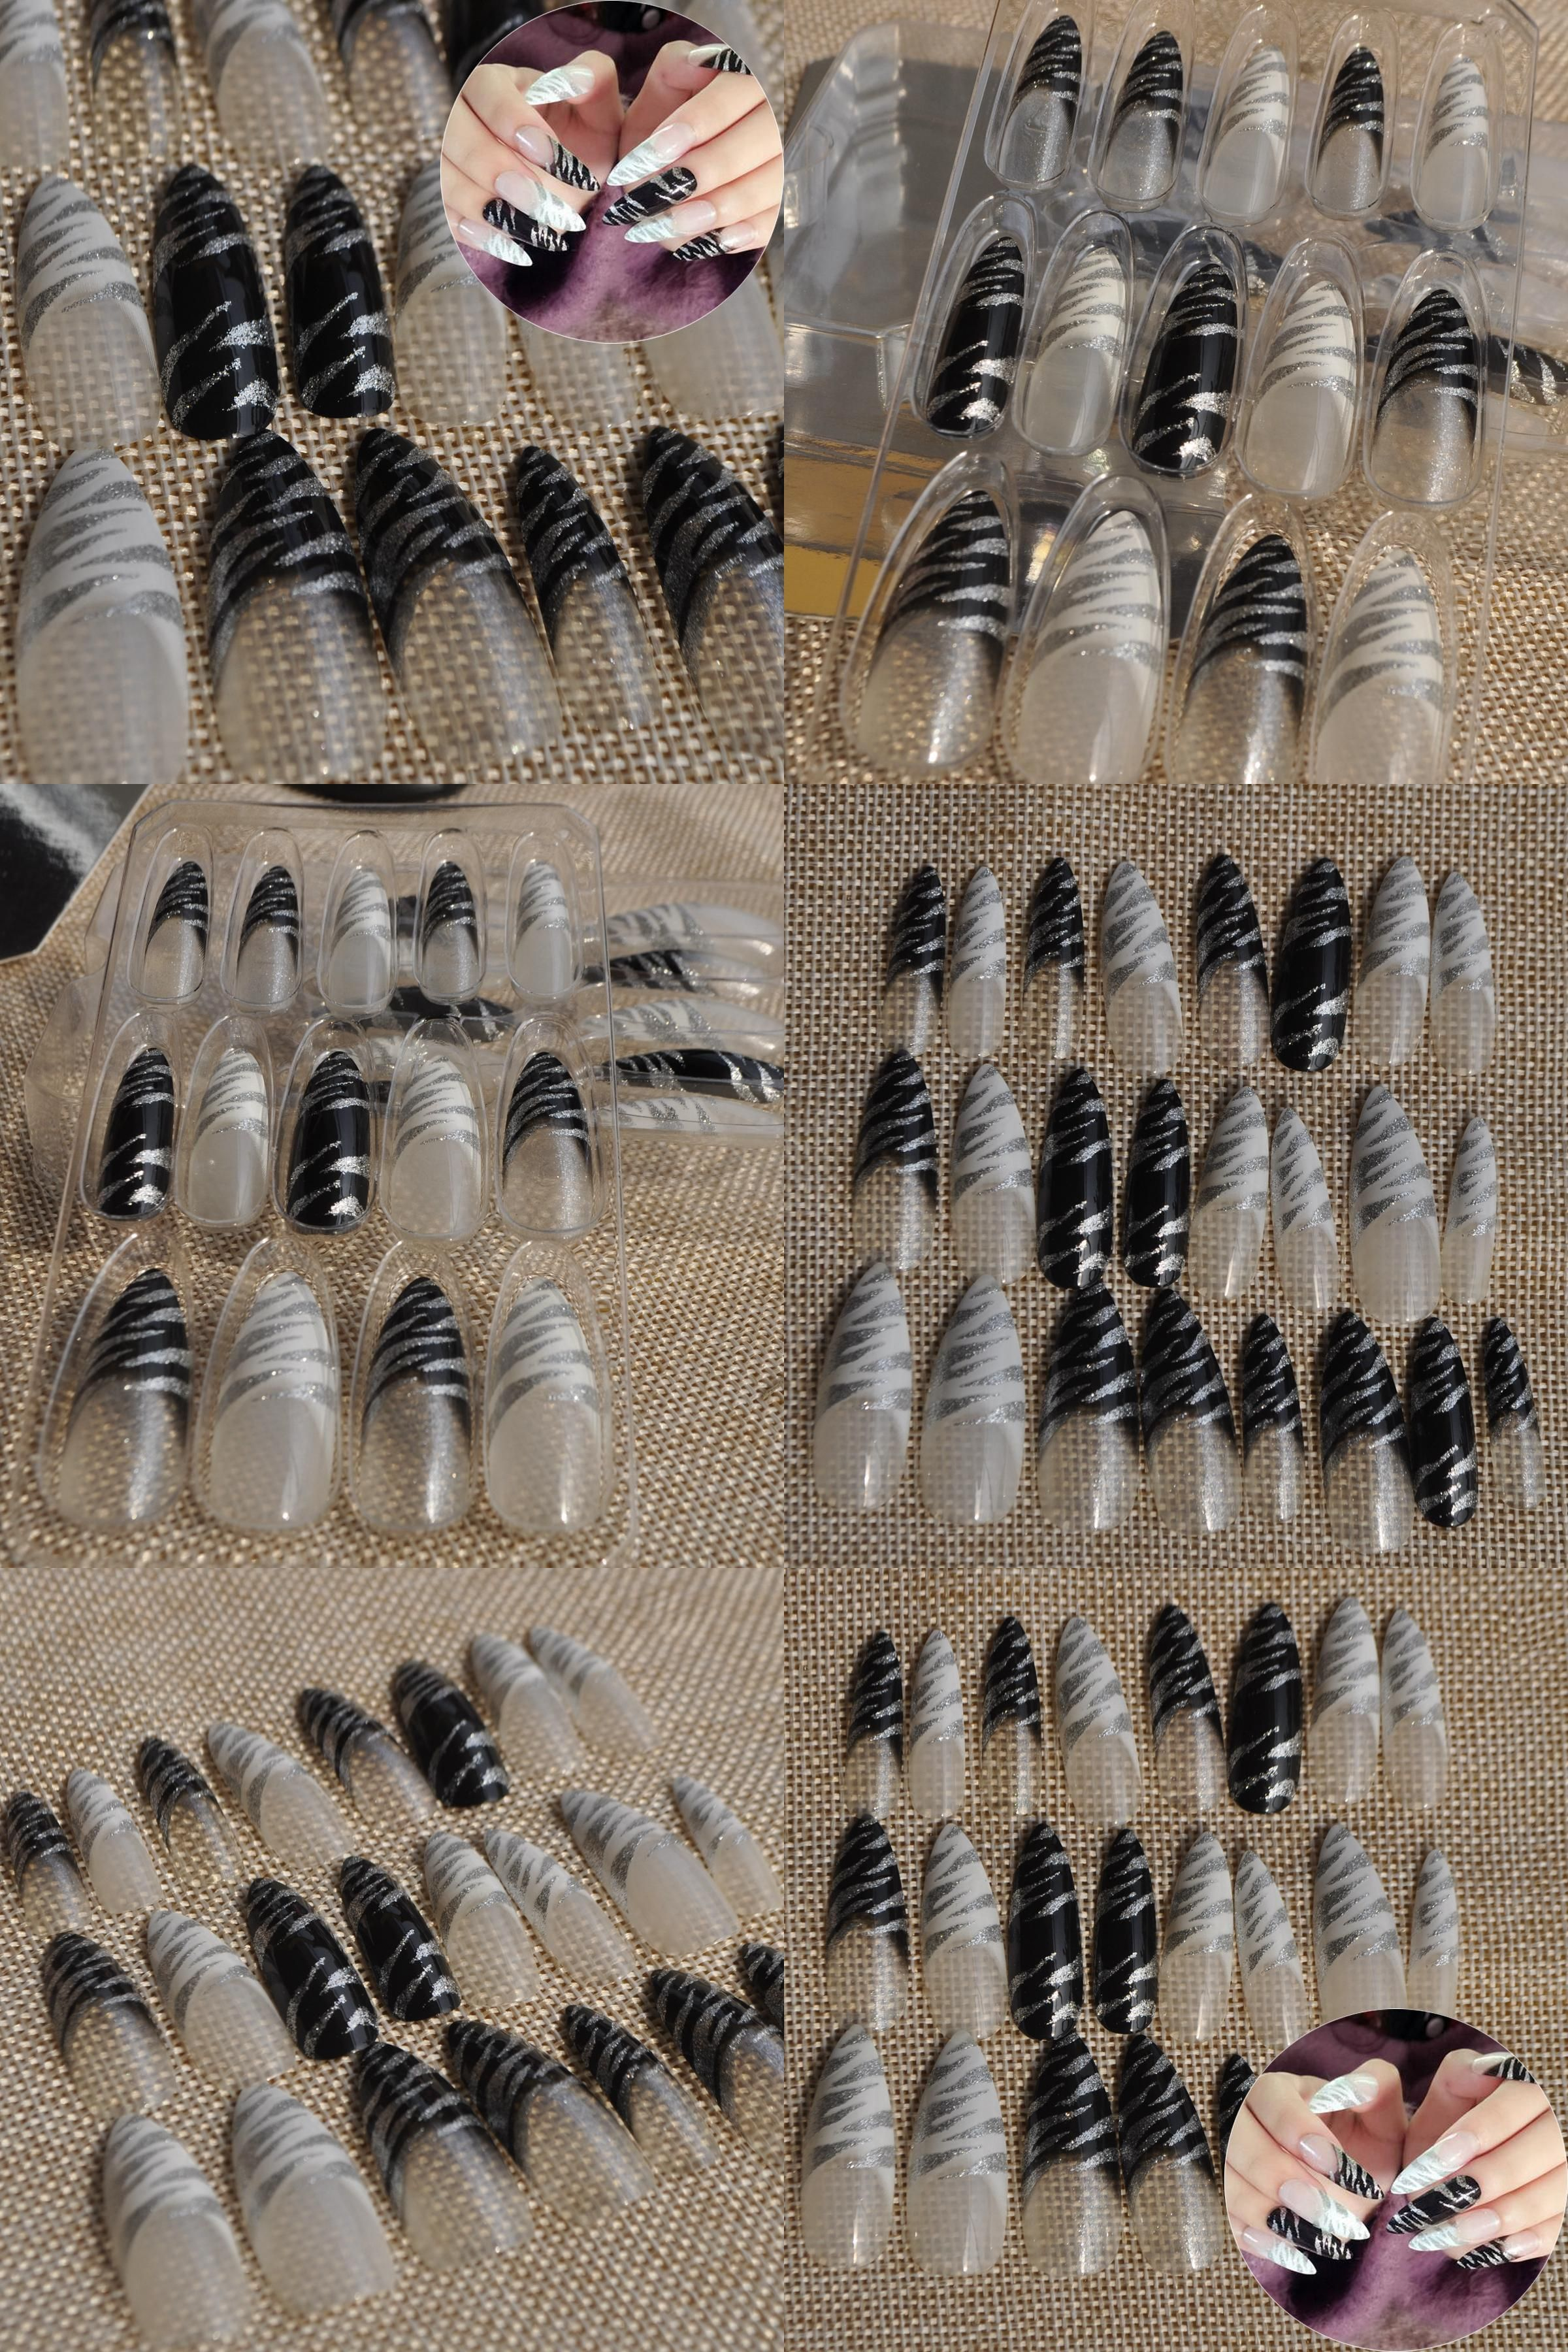 Visit to Buy] Clear Pointed French Nails Extra Long Nail Tips Press ...